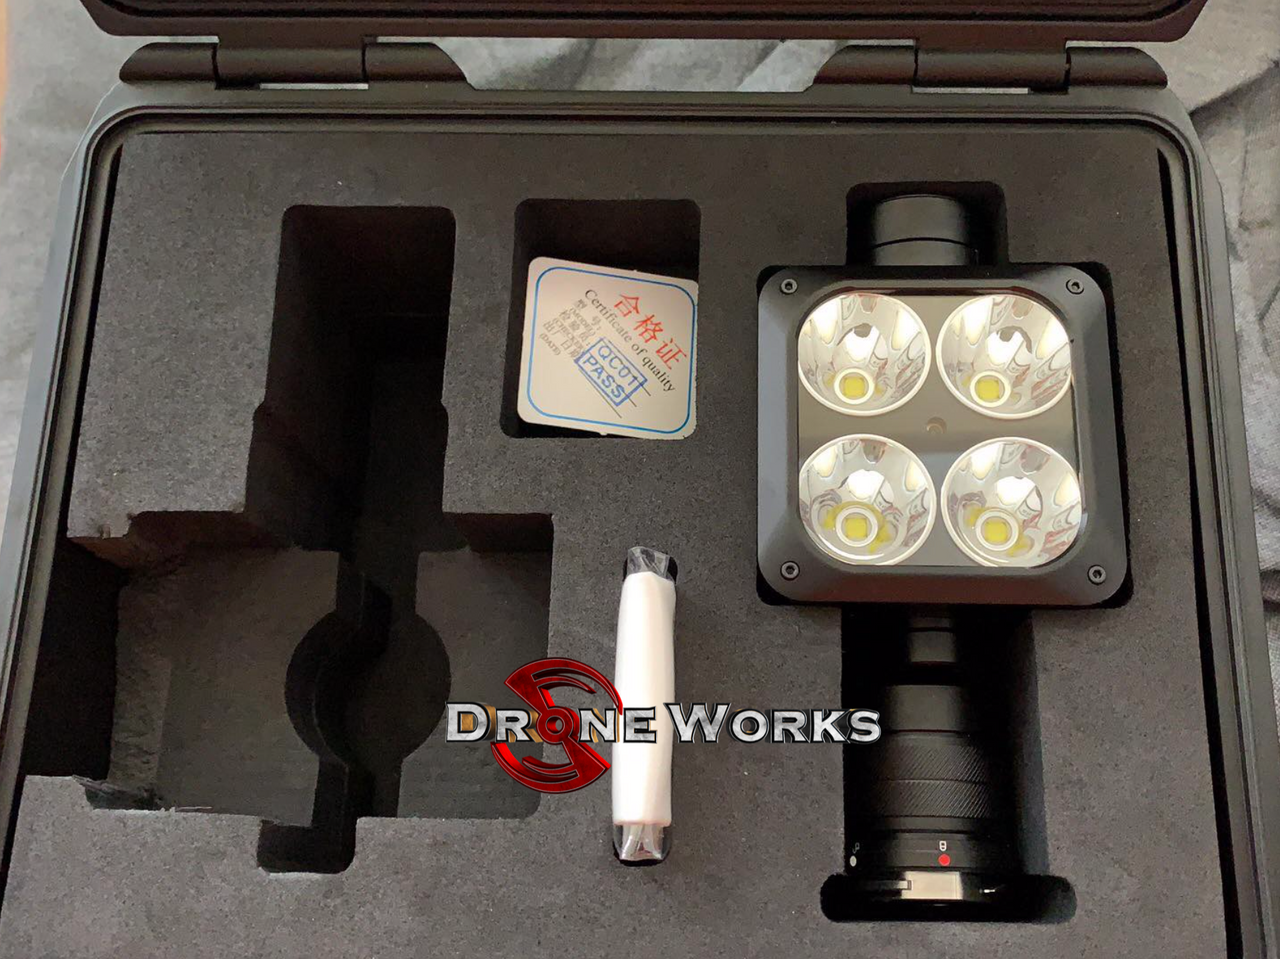 Wingsland Z15 Tactical Spotlight with Laser for Matrice 210 Series Aircraft